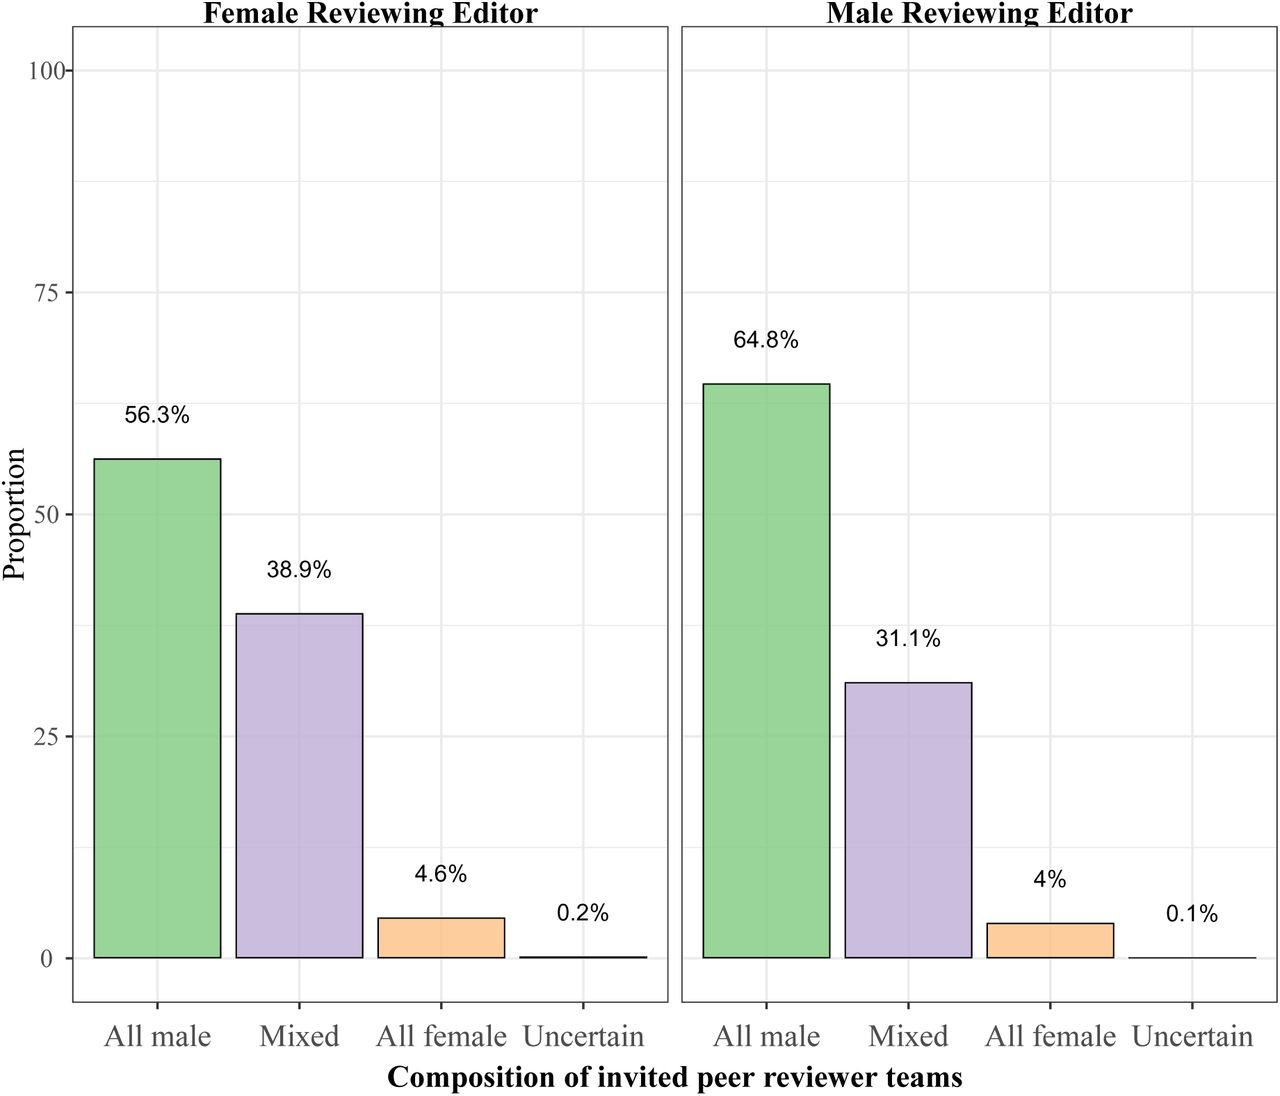 Author-Reviewer Homophily in Peer Review   bioRxiv